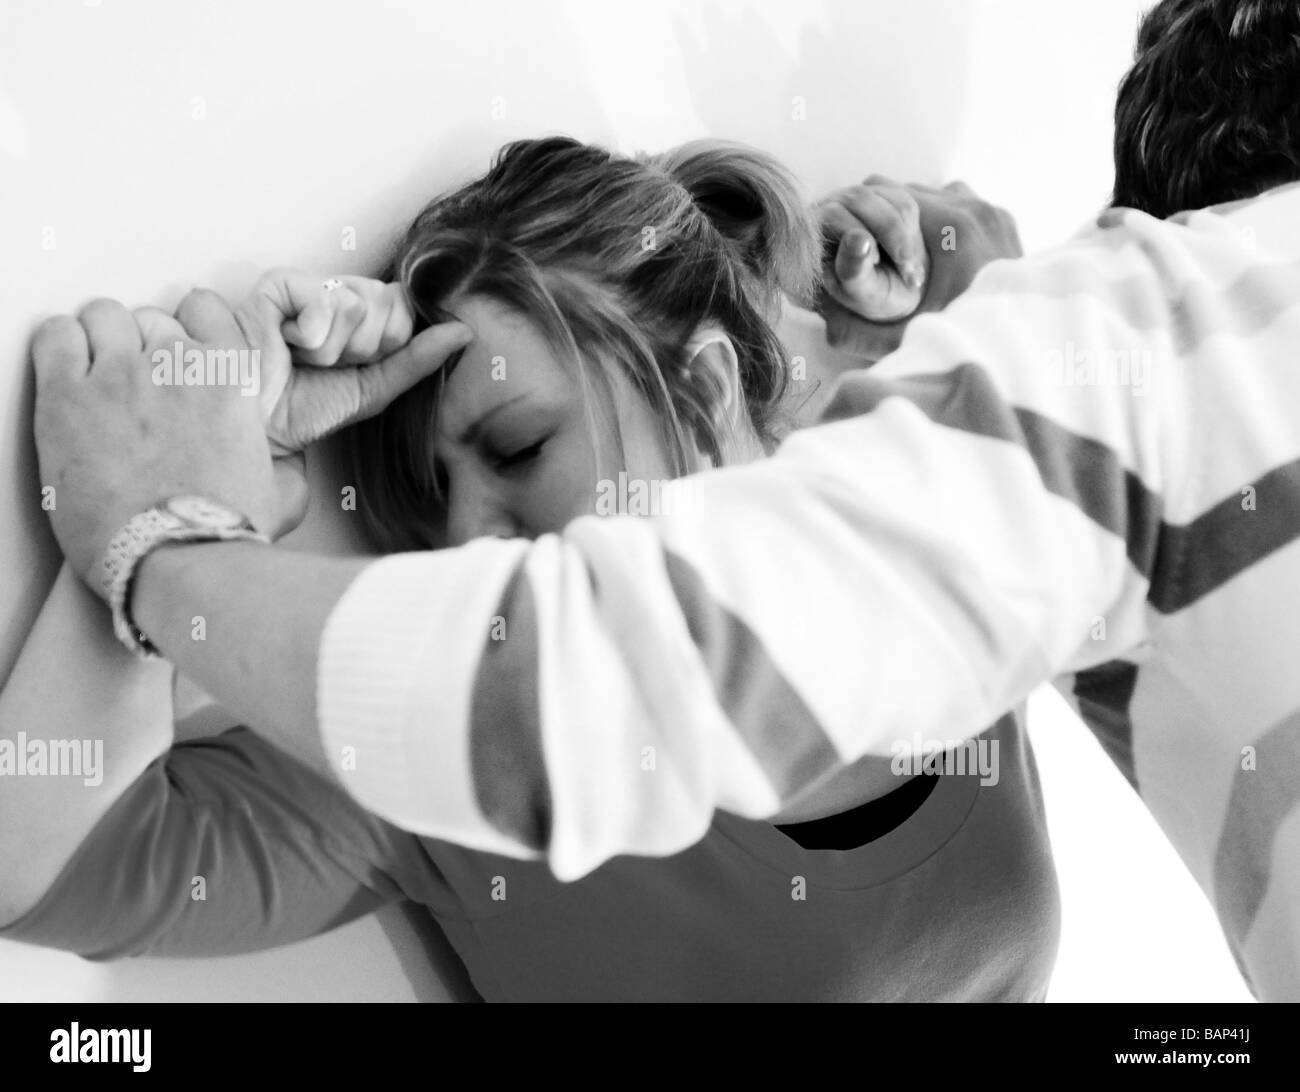 Young male physically abusing a young woman in their twenties - Stock Image